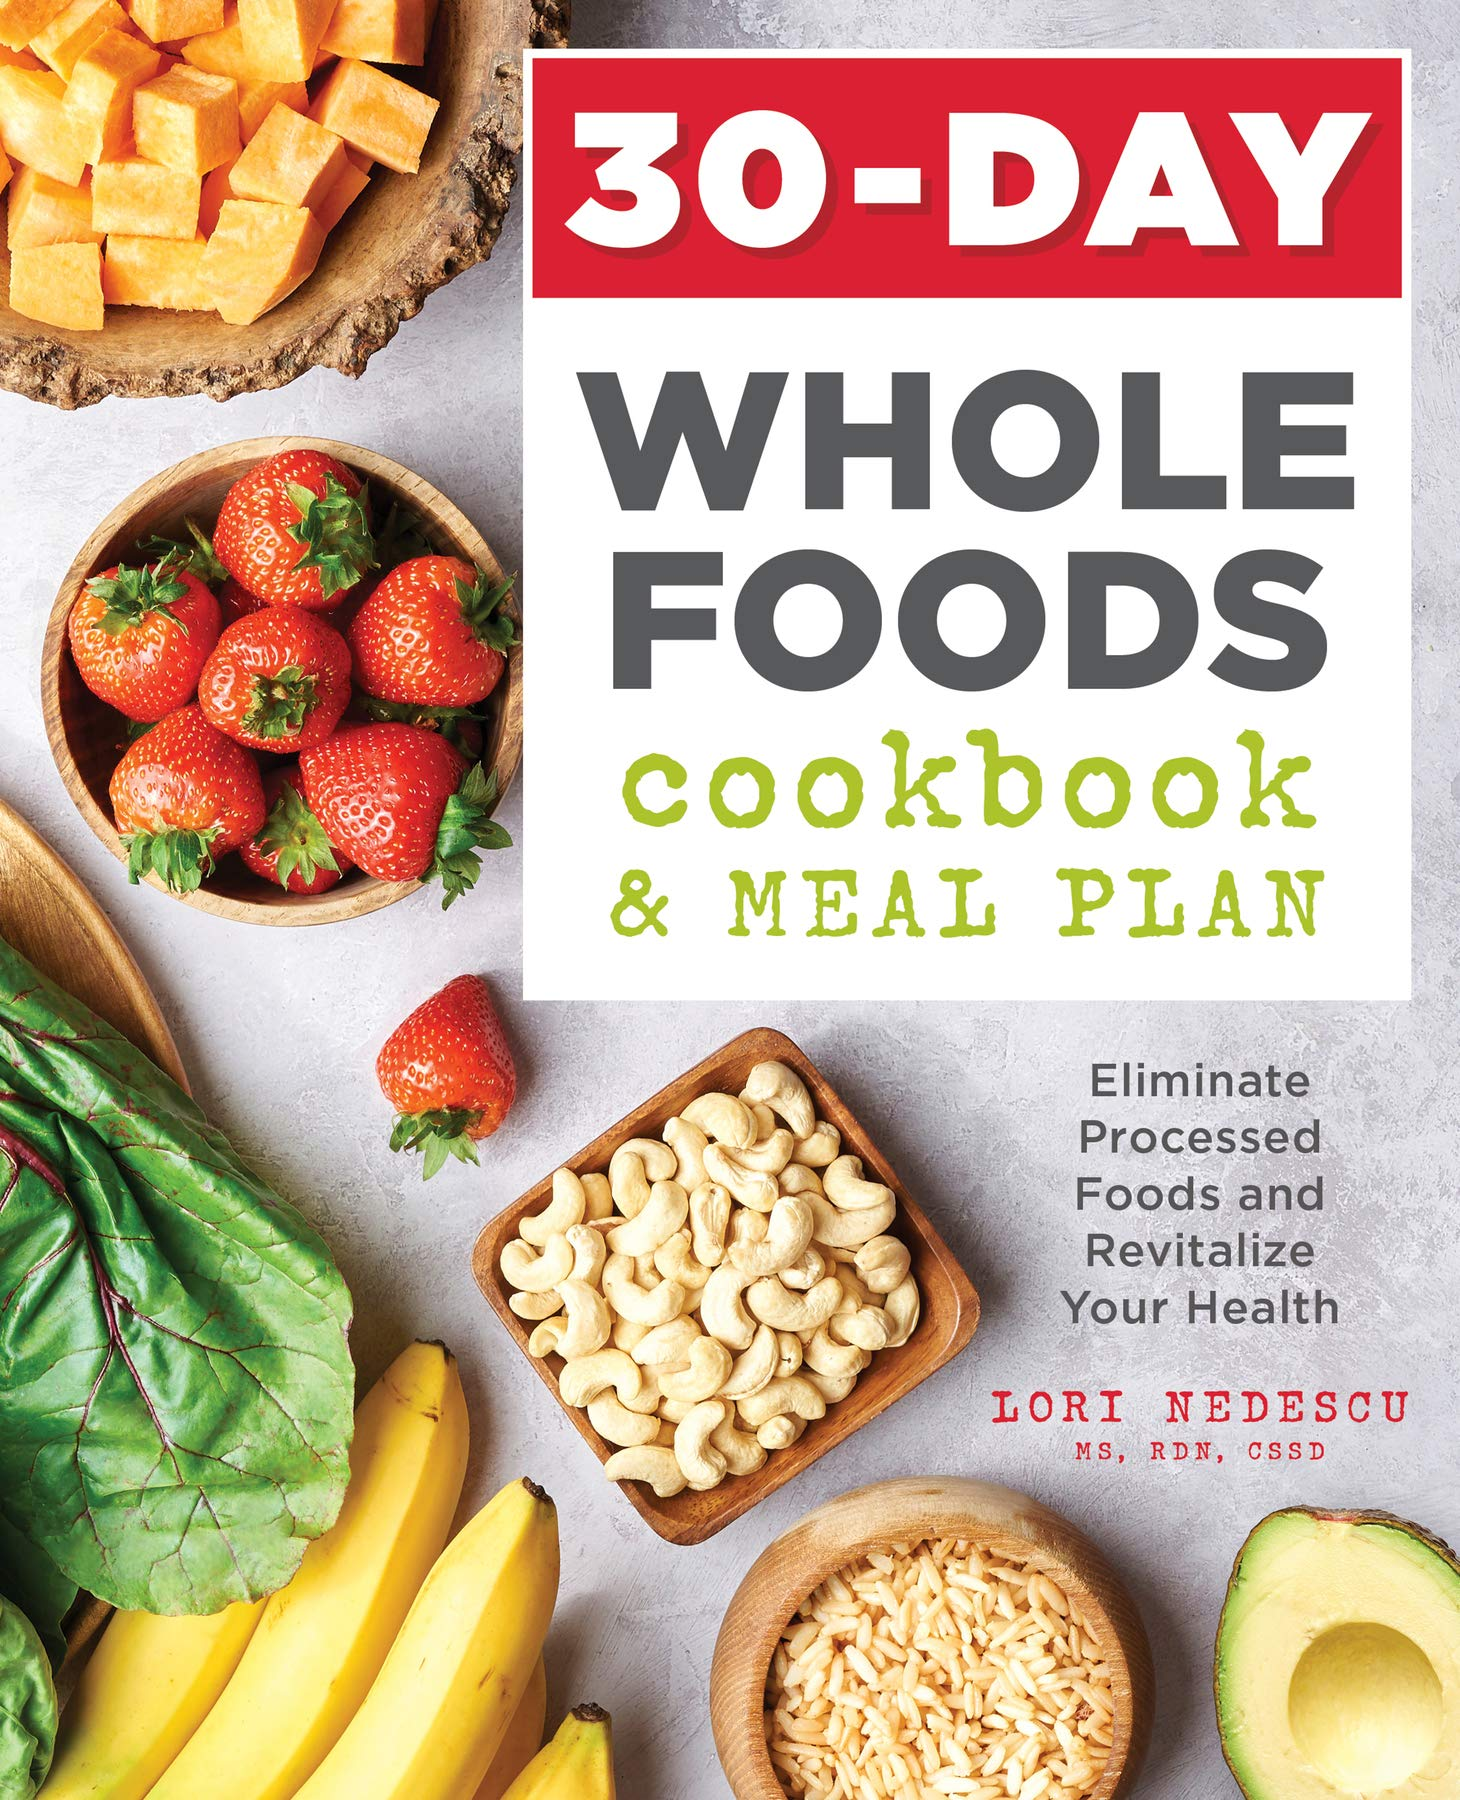 30-Day Whole Foods Cookbook and Meal Plan: Eliminate Processed Foods and  Revitalize Your Health: Lori Nedescu MS RDN CSSD: 9781641522113:  Amazon.com: Books